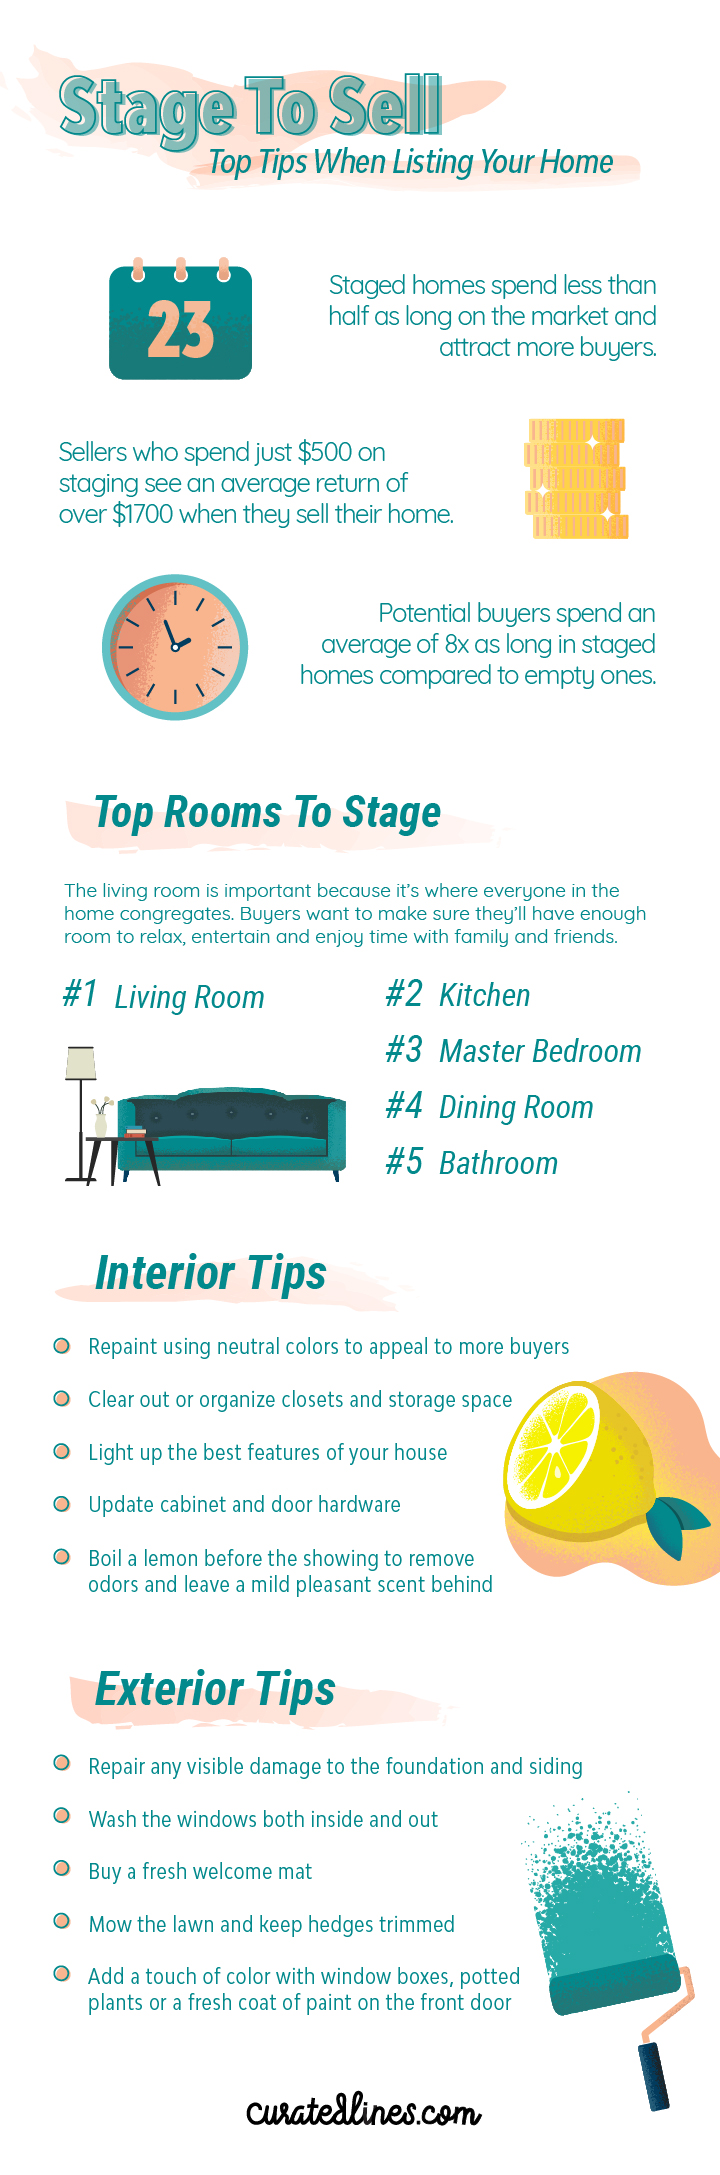 Top Home Staging Tips When Listing and Selling Your Home